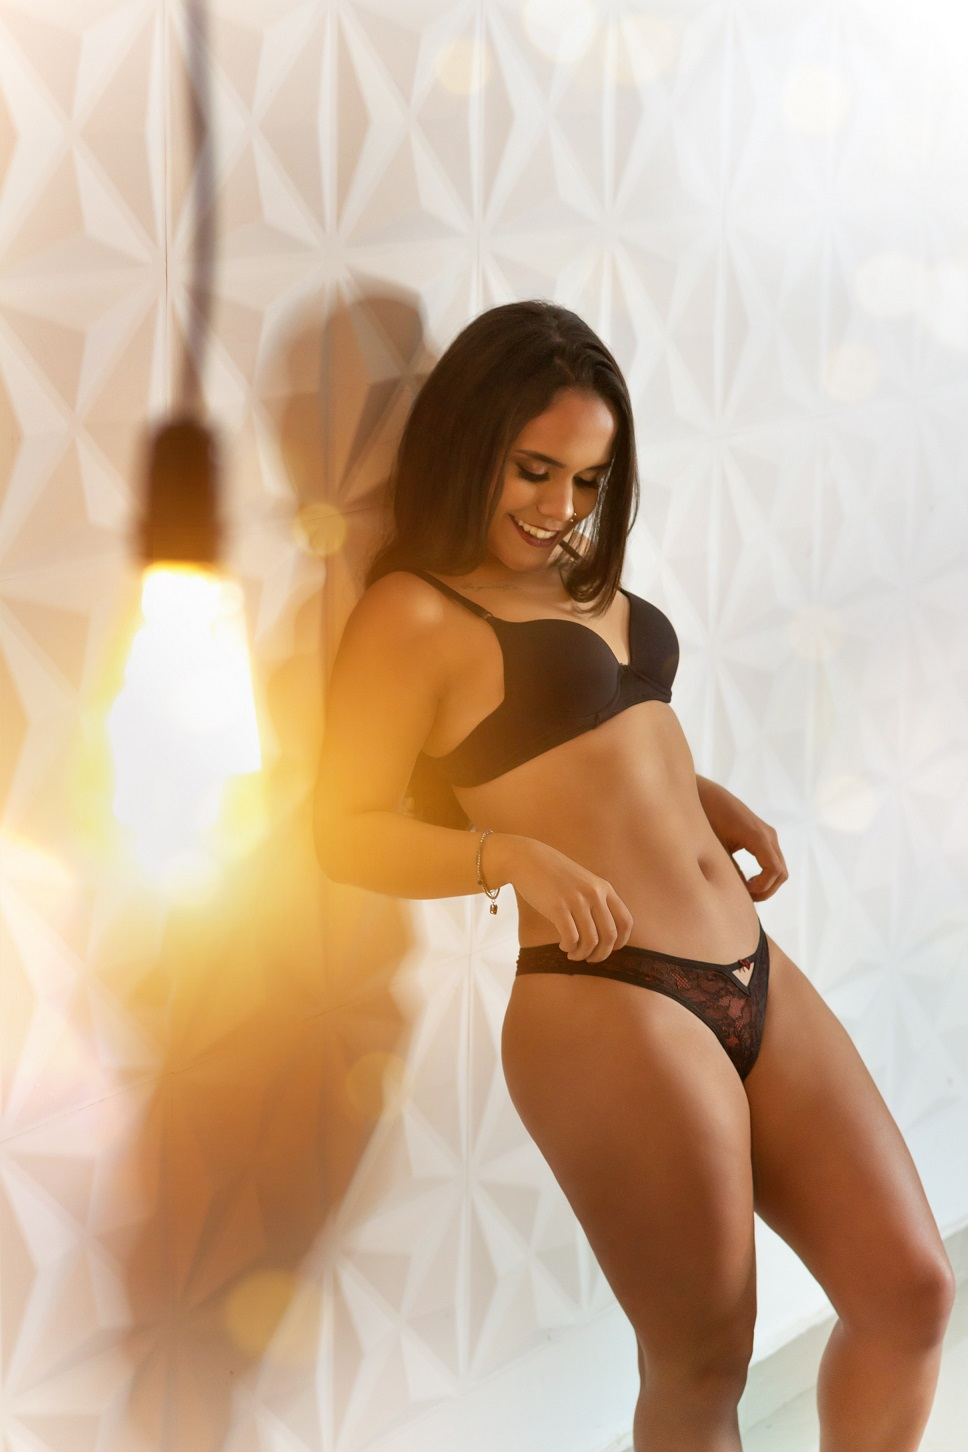 The SecretGirl Prague Is The Best Escort Directory in Prague